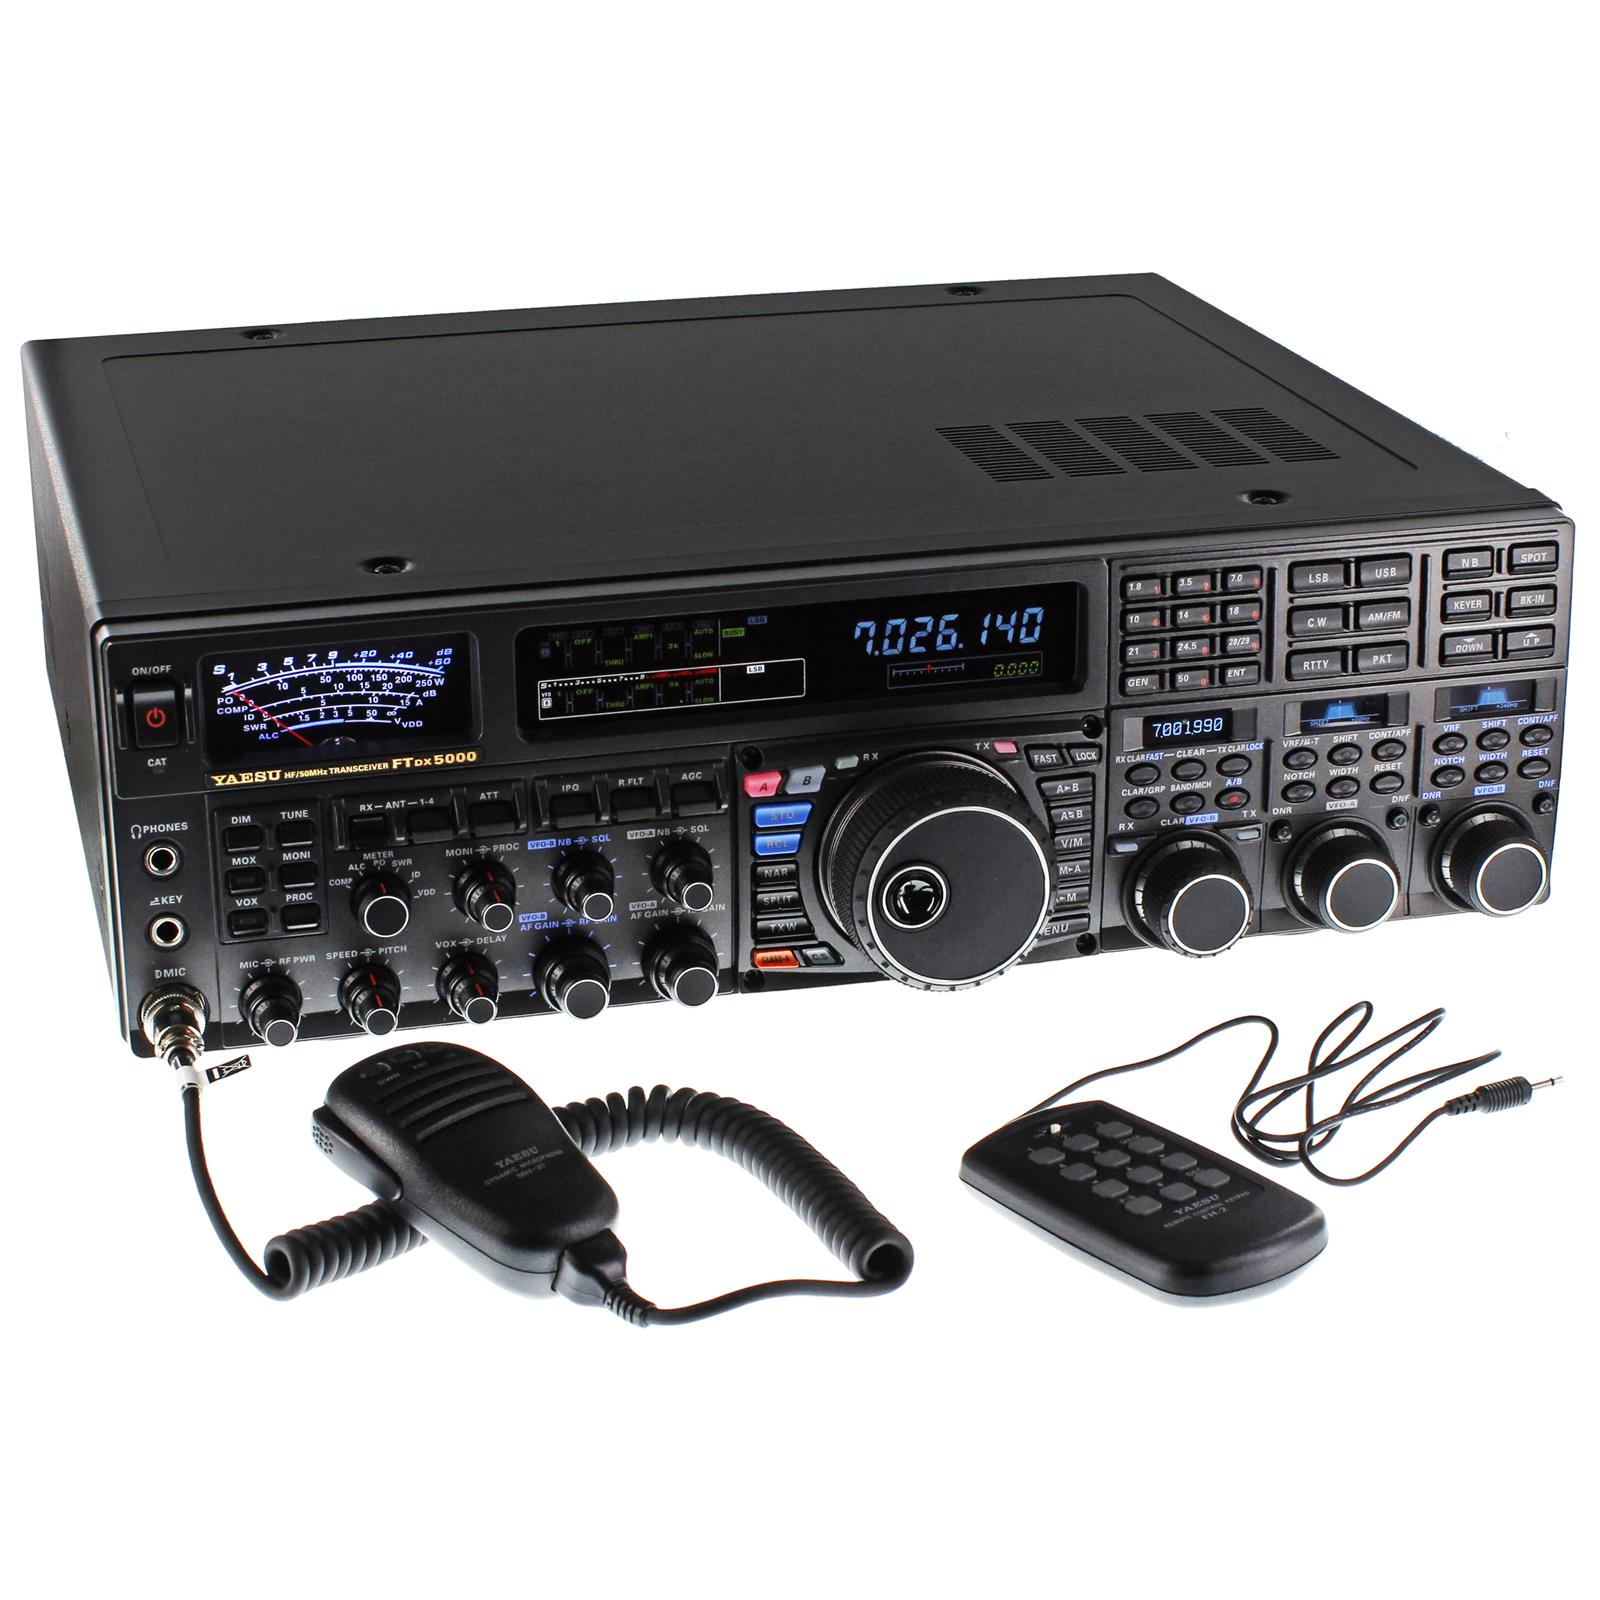 Yaesu Ftdx 5000mp Limited Hf 50 Mhz Transceivers Ftdx 5000mpl Free Shipping On Most Orders Over 99 At Dx Engineering